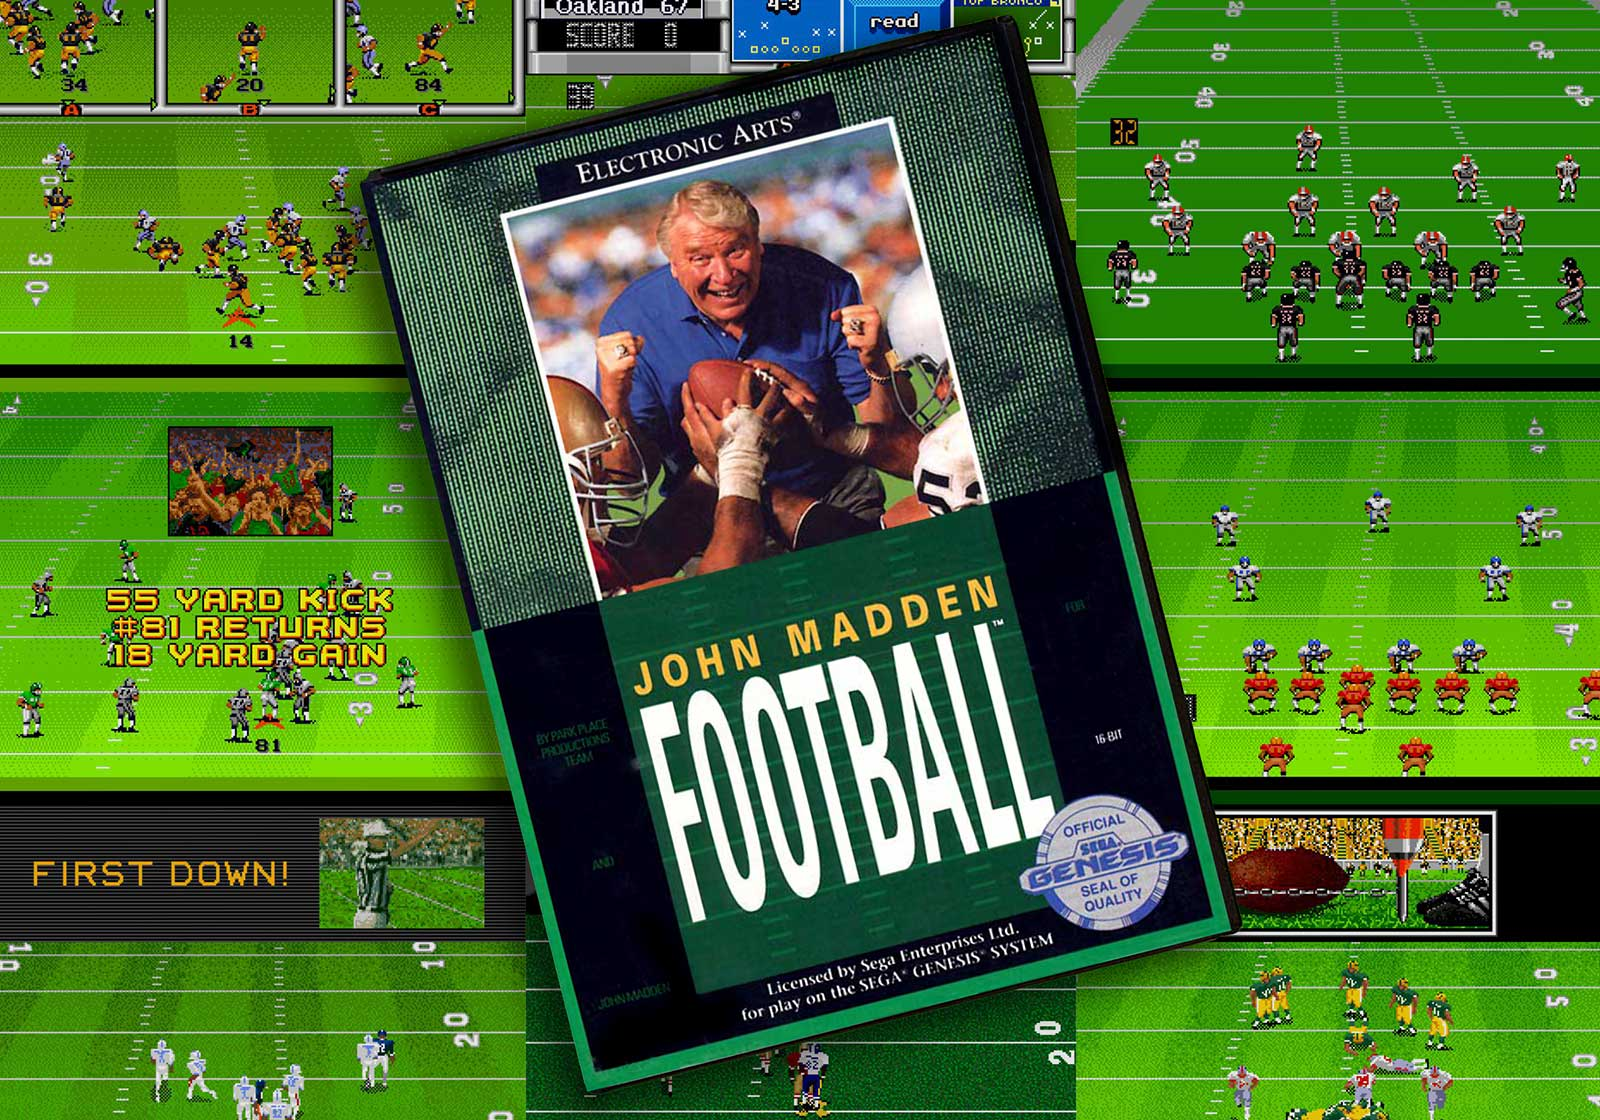 Madden Football History and EA's Other Notable Genesis Football Games